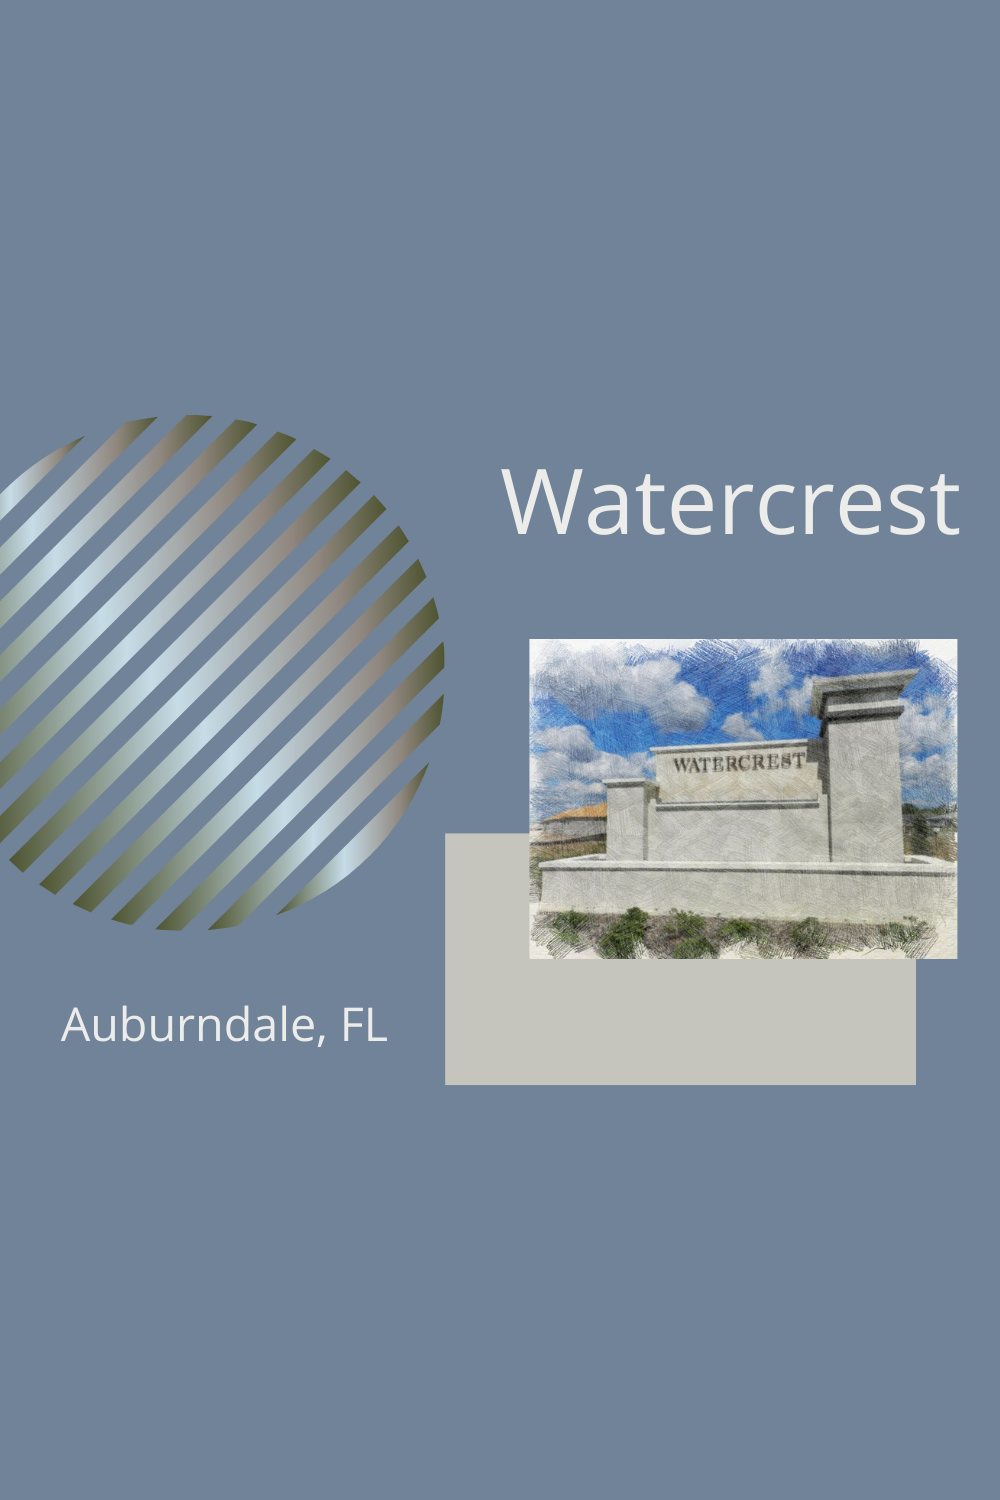 Location, location, location! Watercrest is located in the